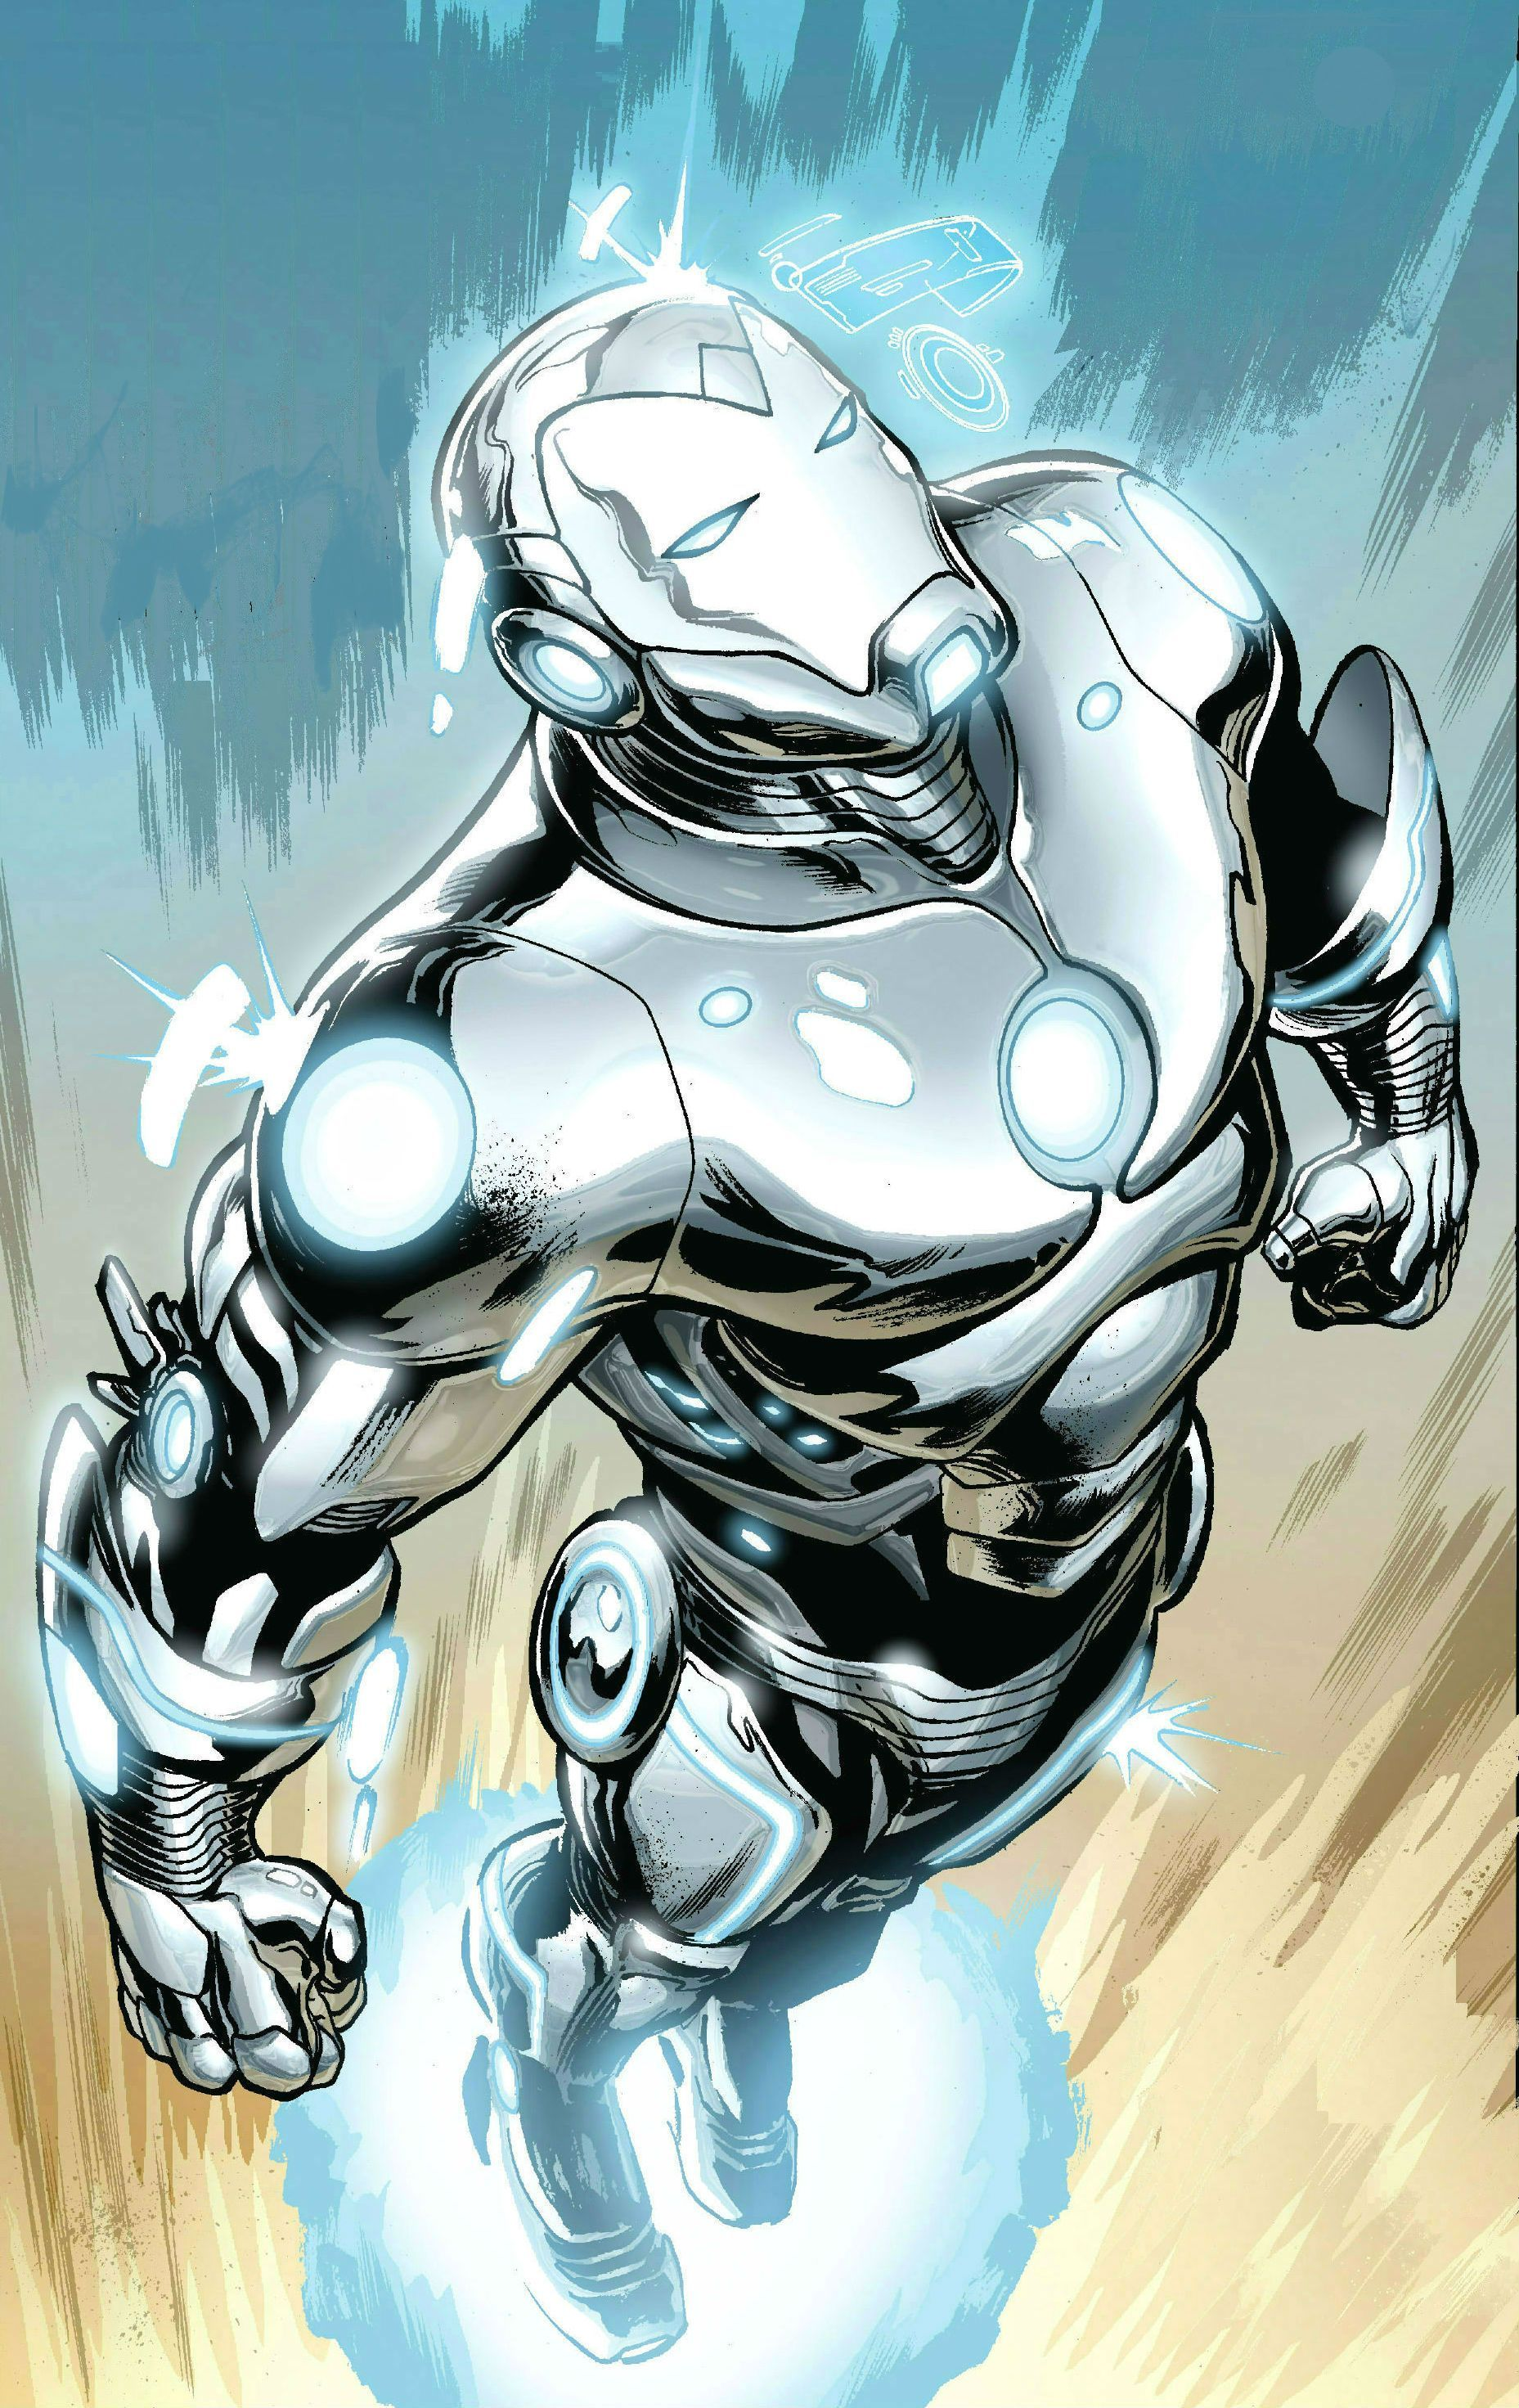 Here S What The New Extremis Armor Will Look Like In Superior Iron Man Iron Man Art Iron Man Comic Iron Man Armor